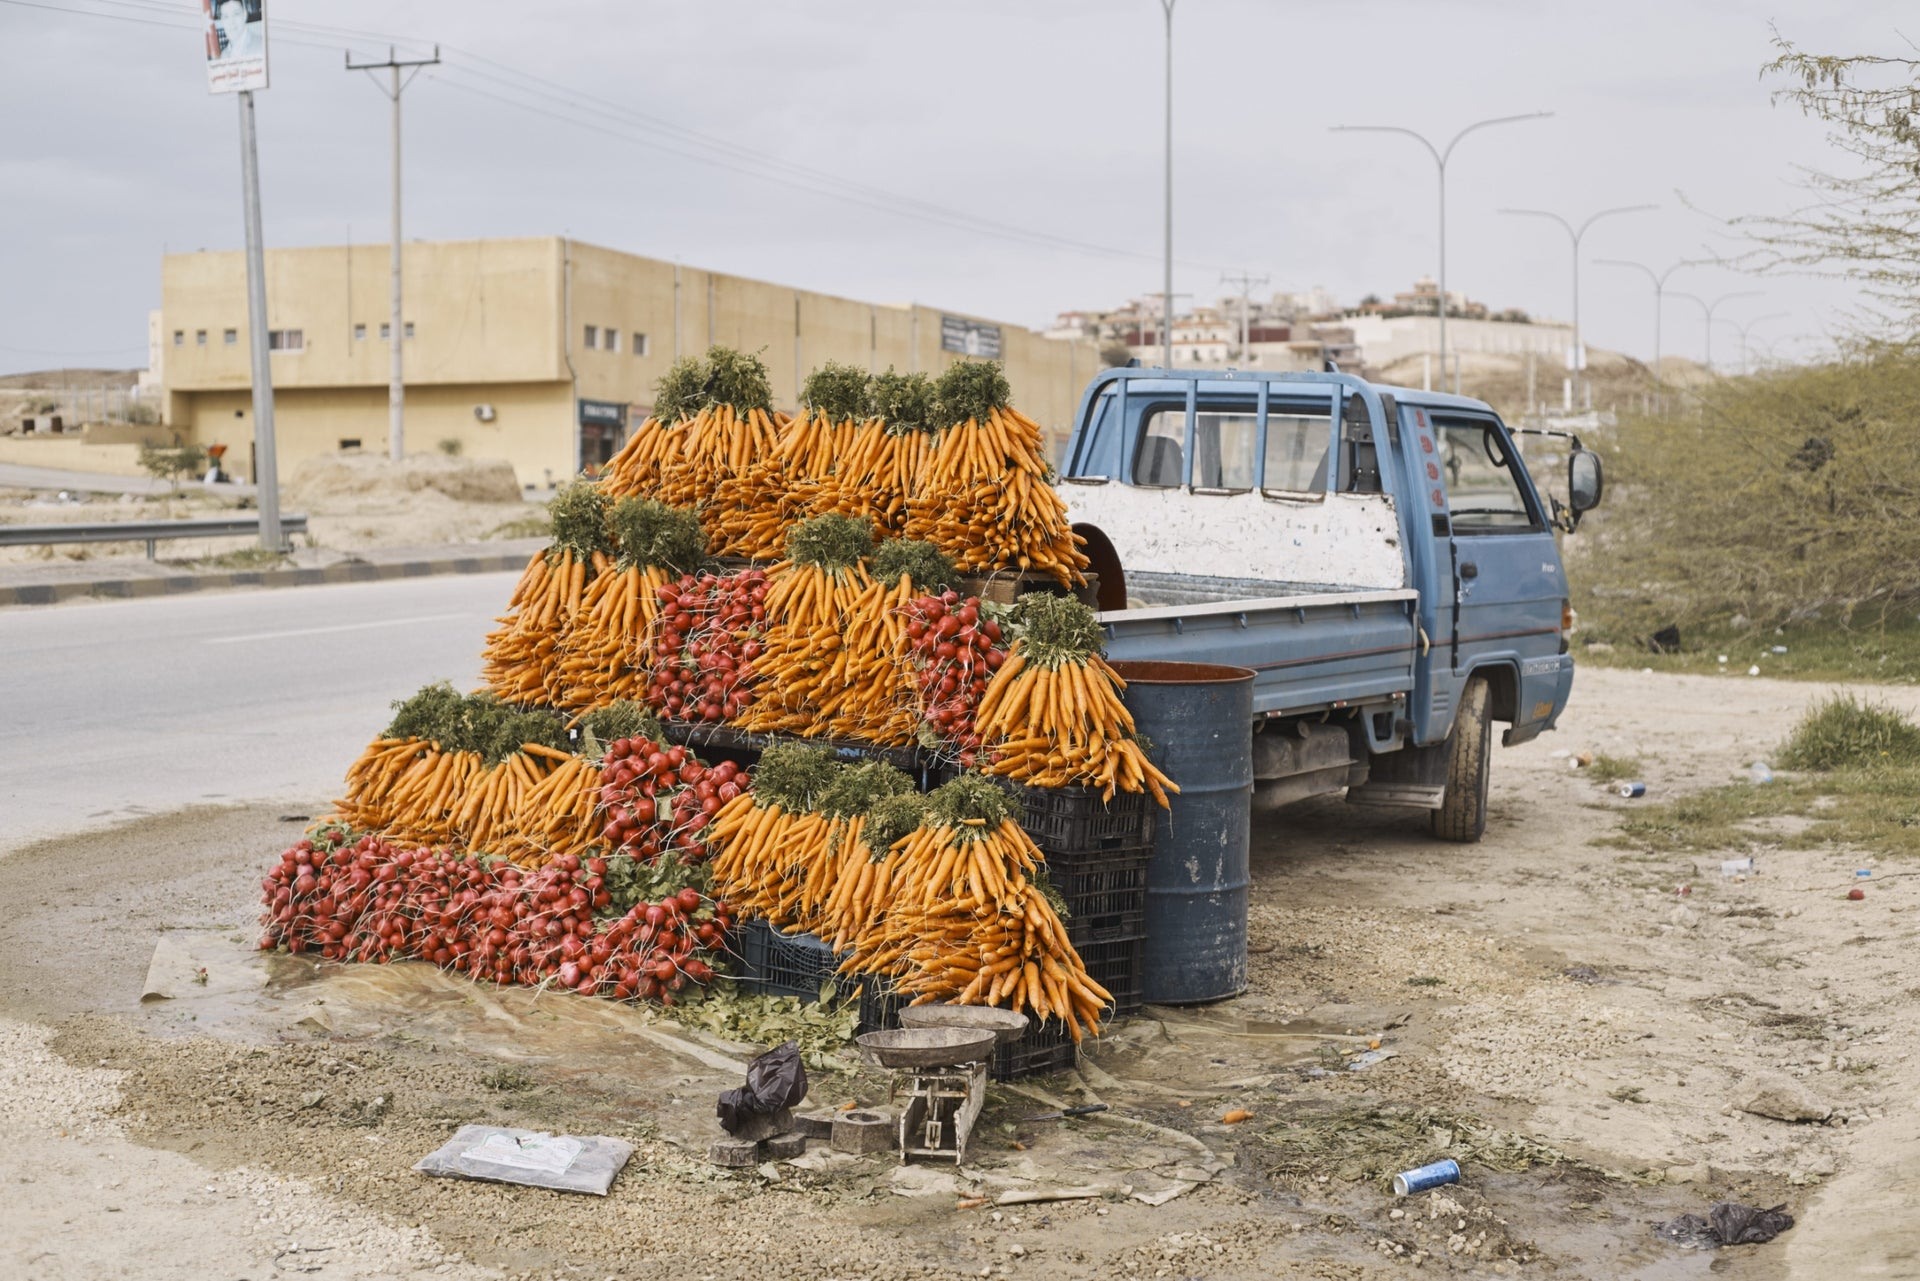 Roadside vegetable stand on the other side of the Jordan.